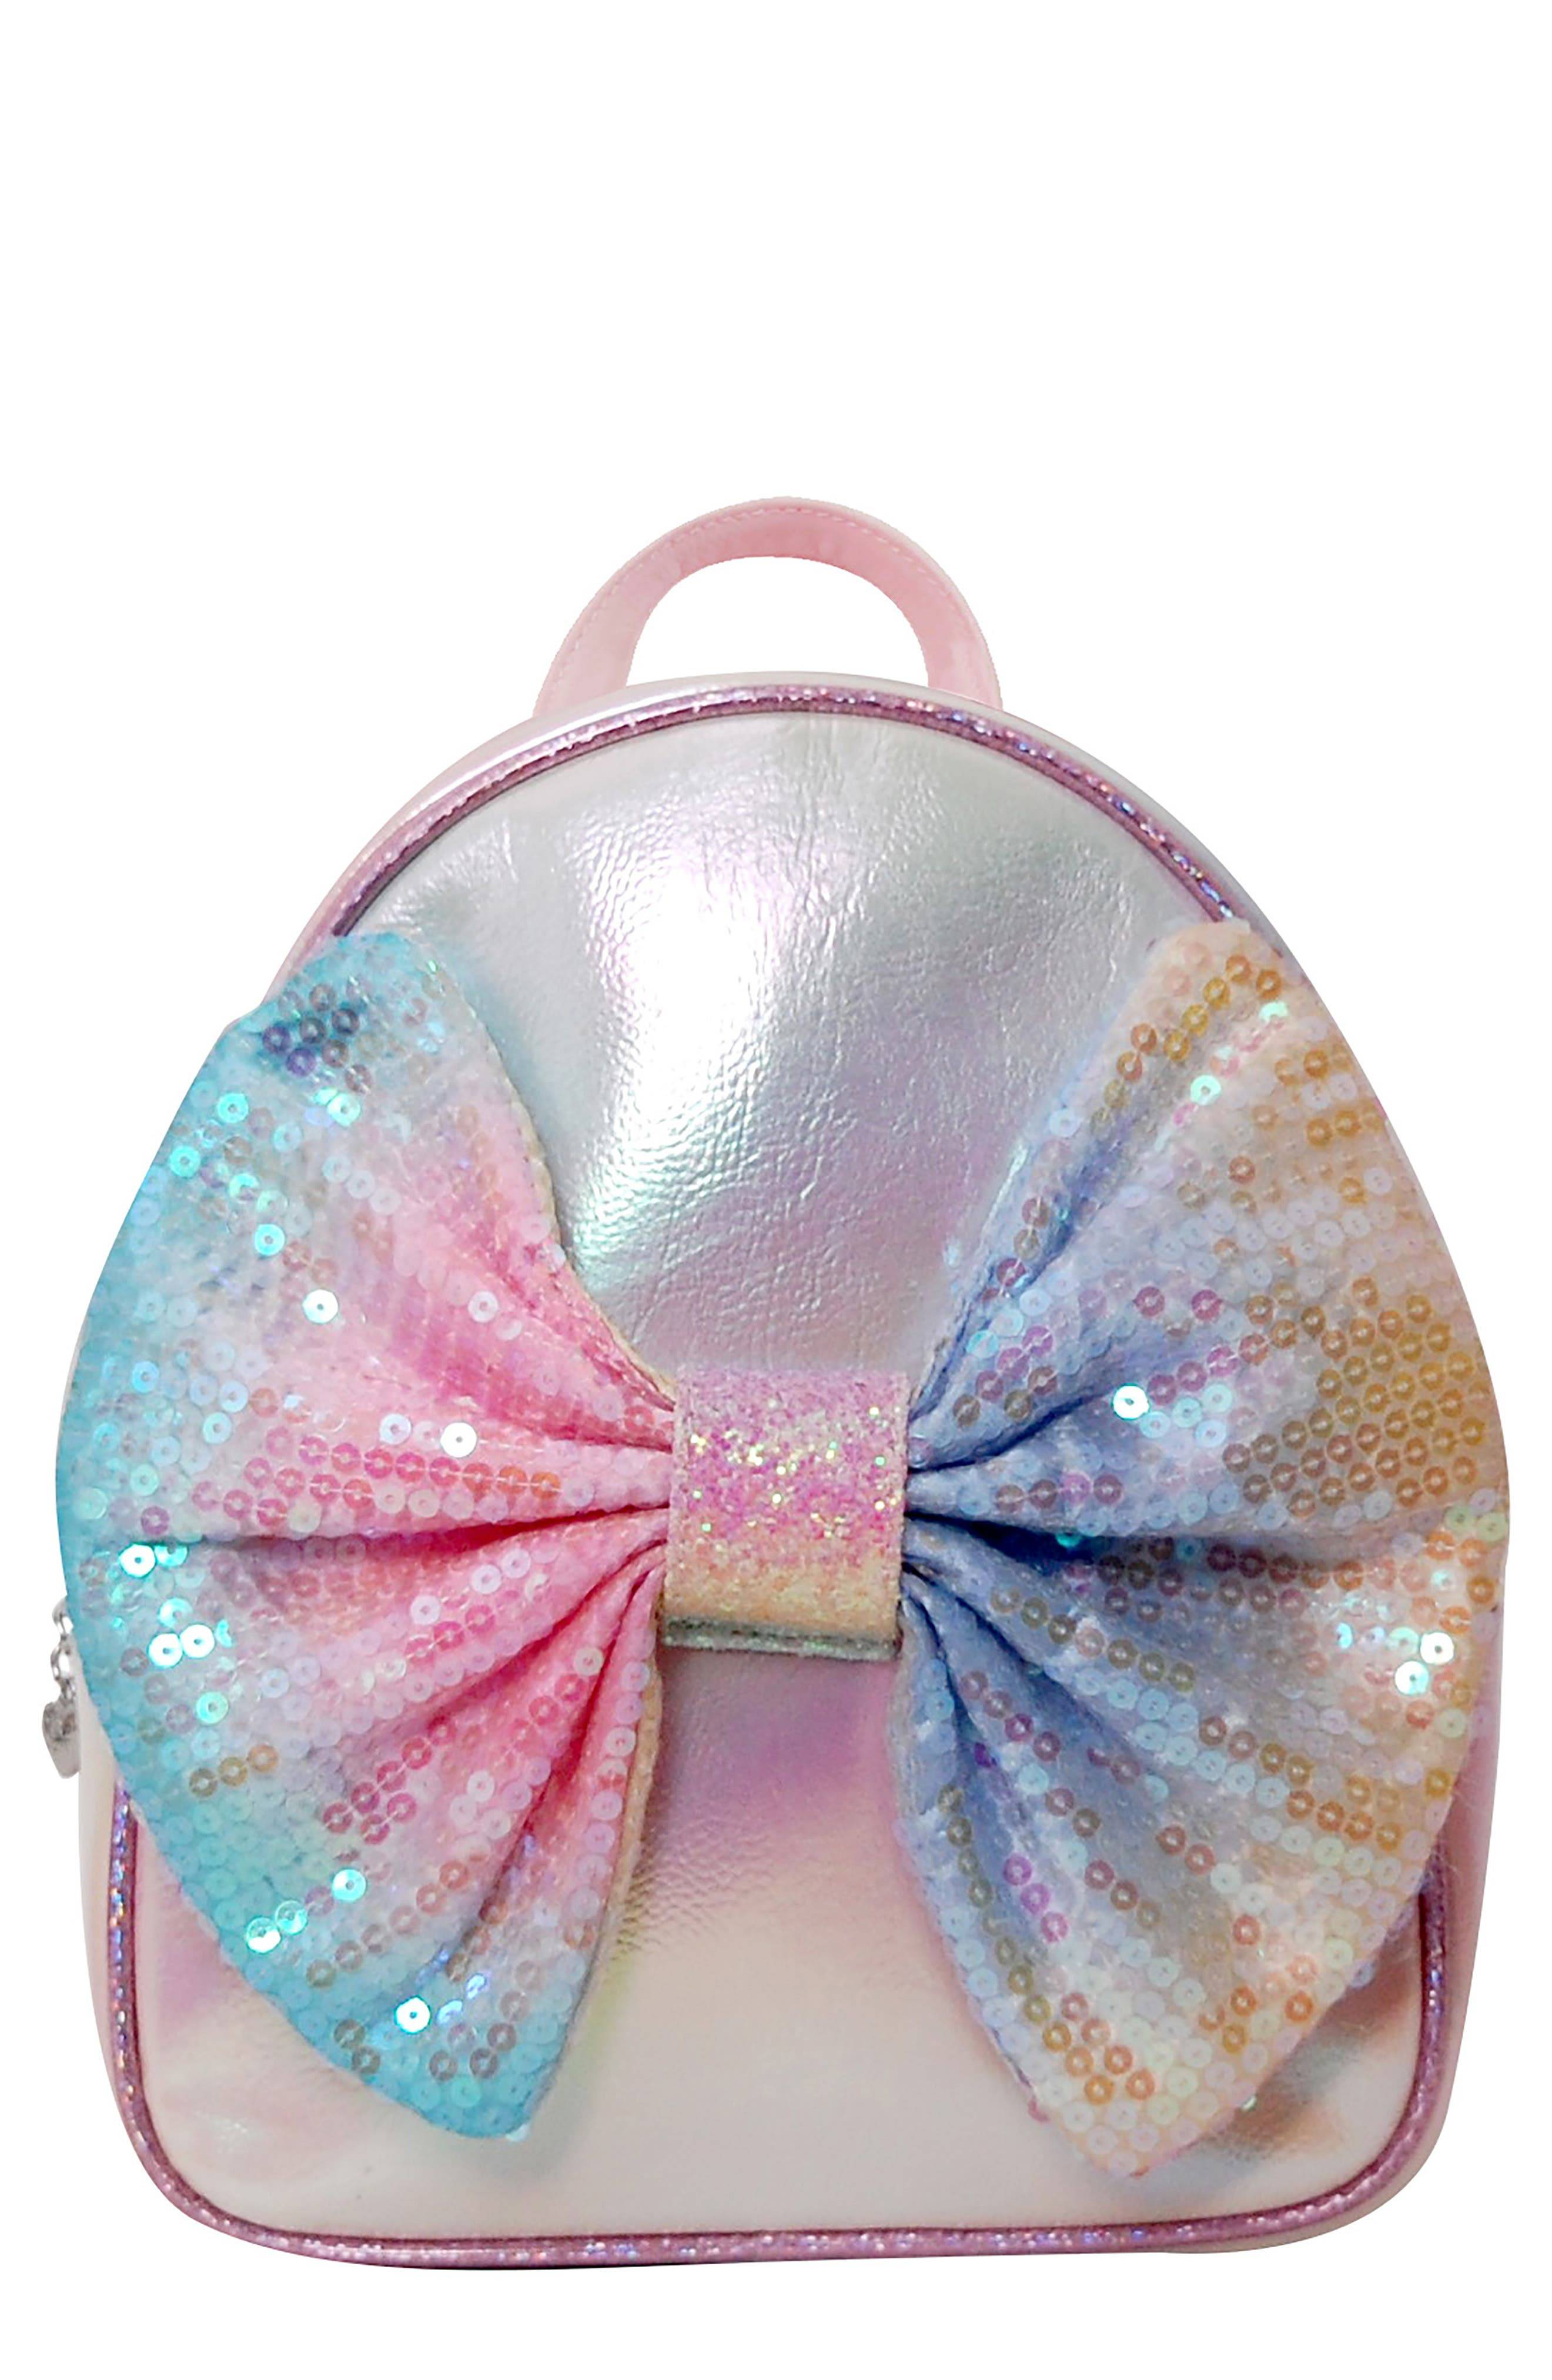 OMG Accessories Girl's Omg Ombre Sequin Bow Mini Backpack - Pink